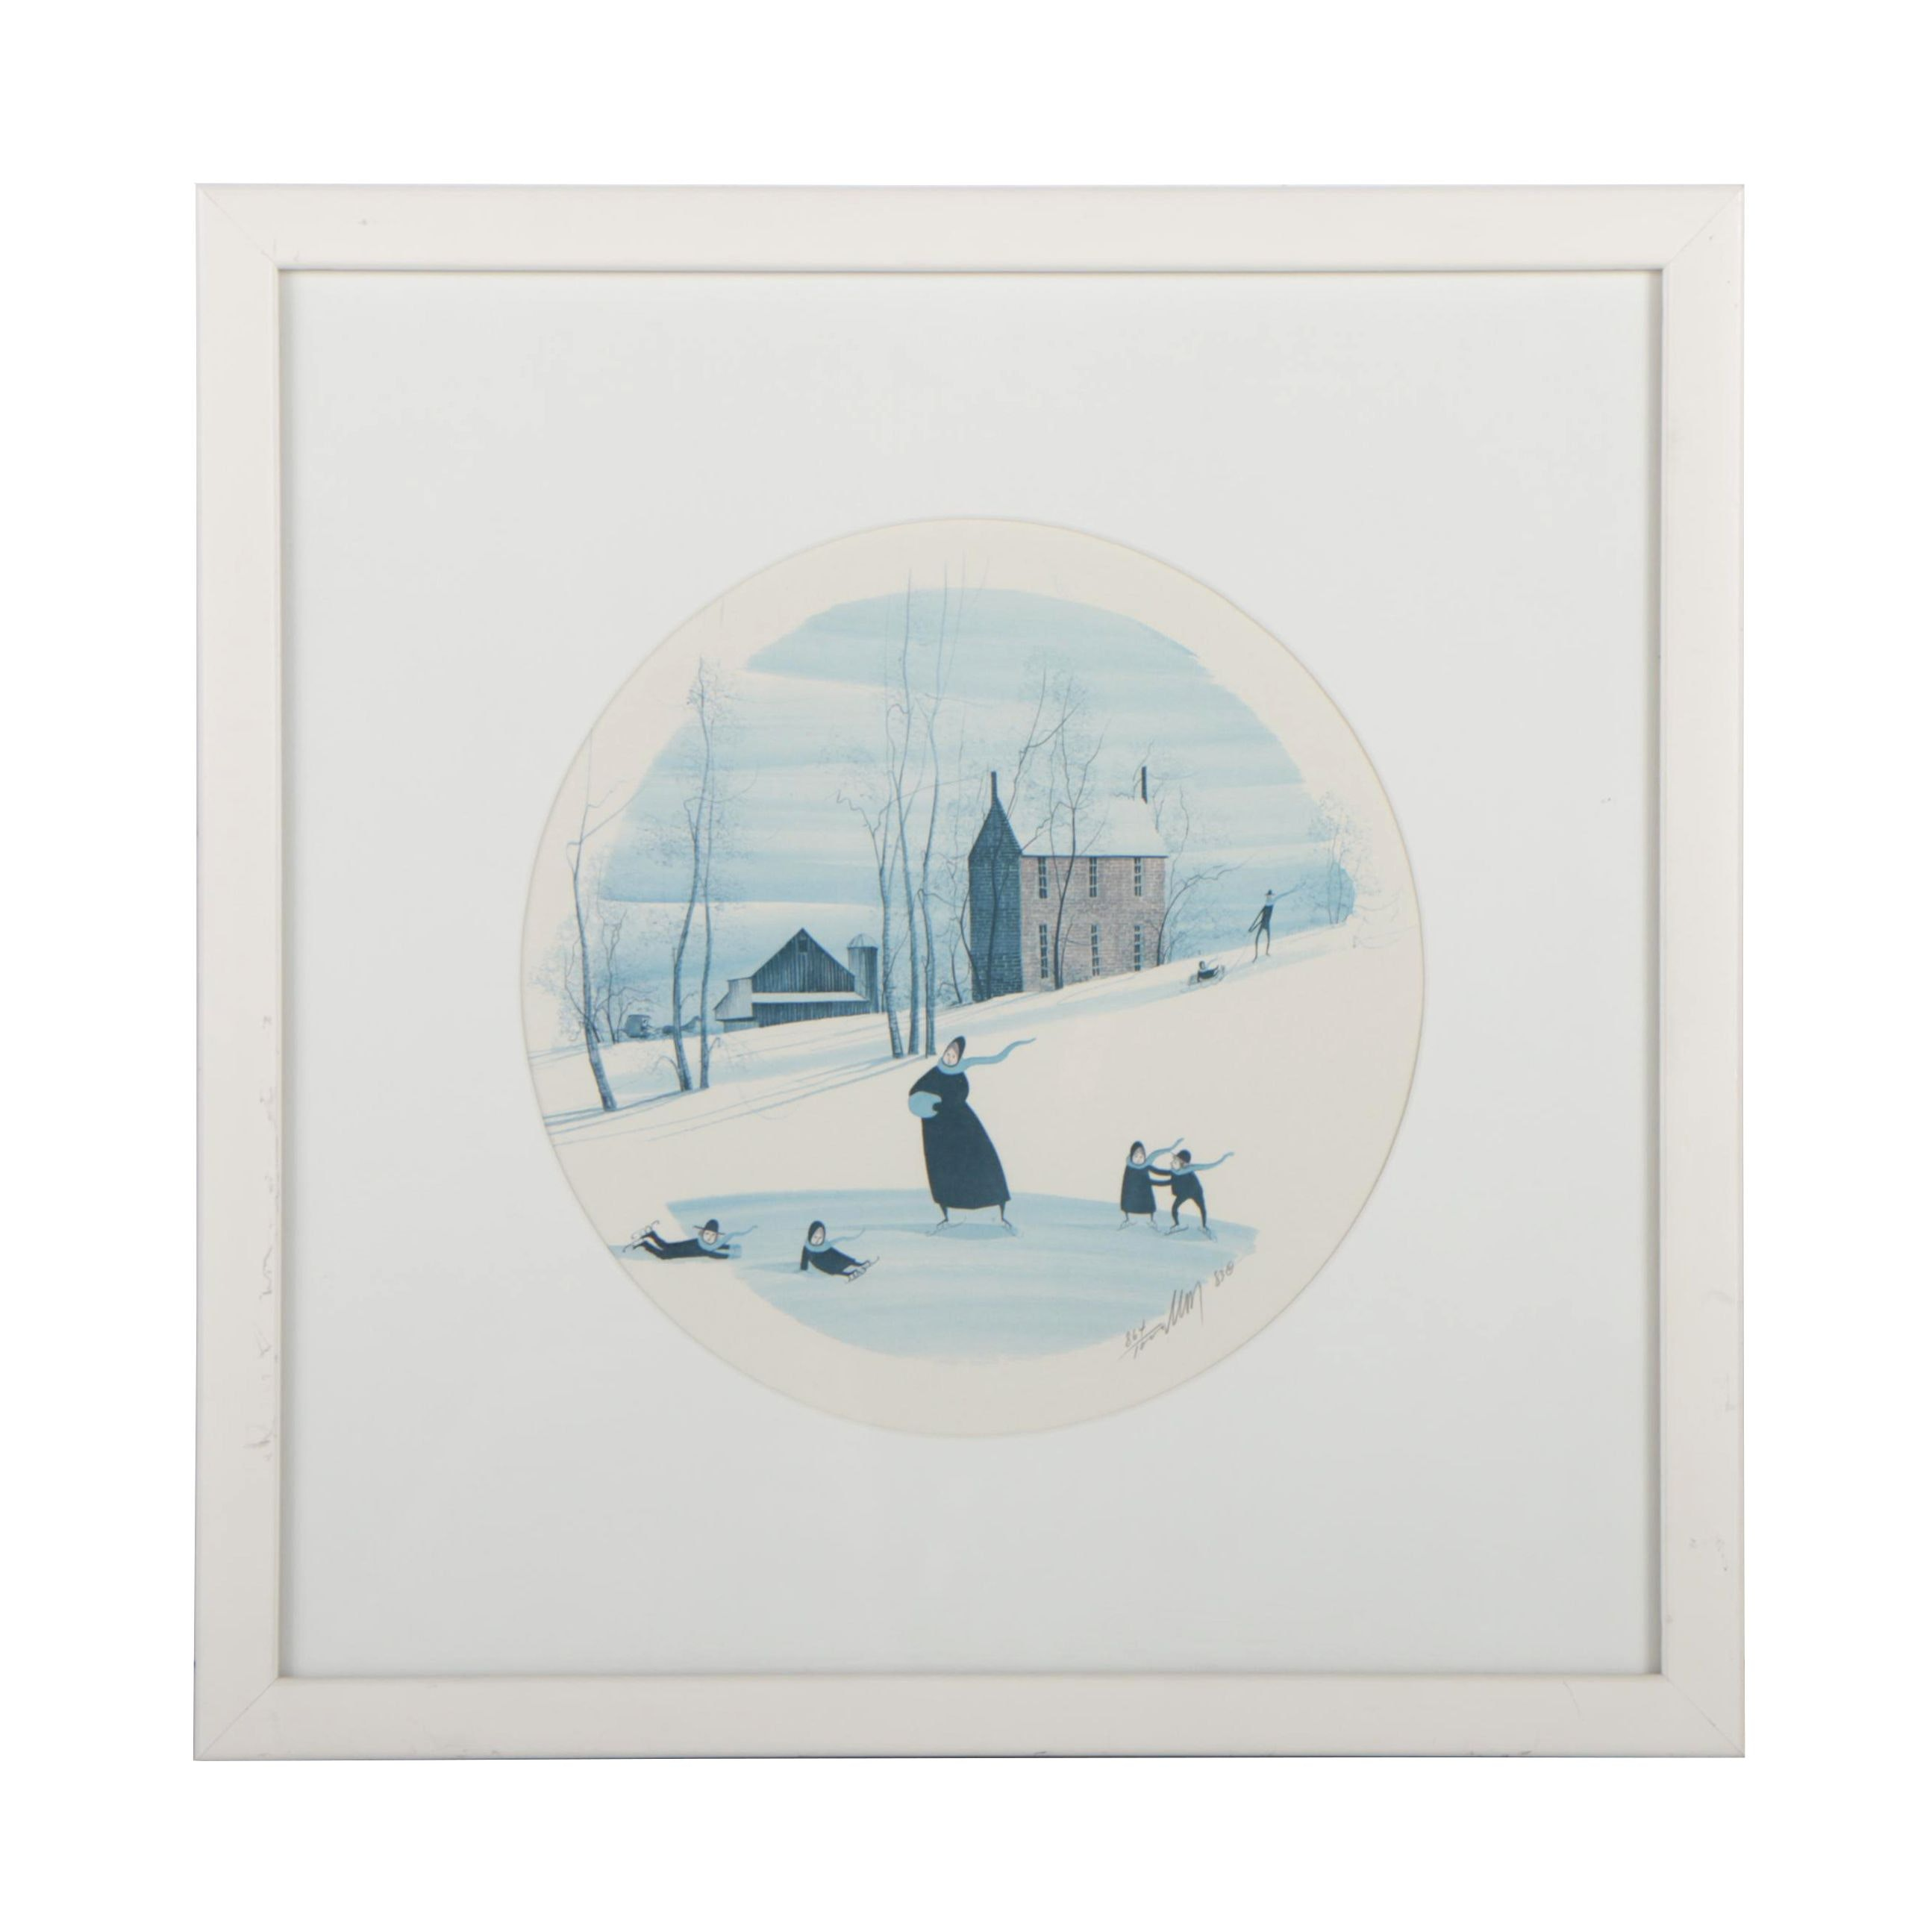 P. Buckley Moss Limited Edition Offset Lithograph